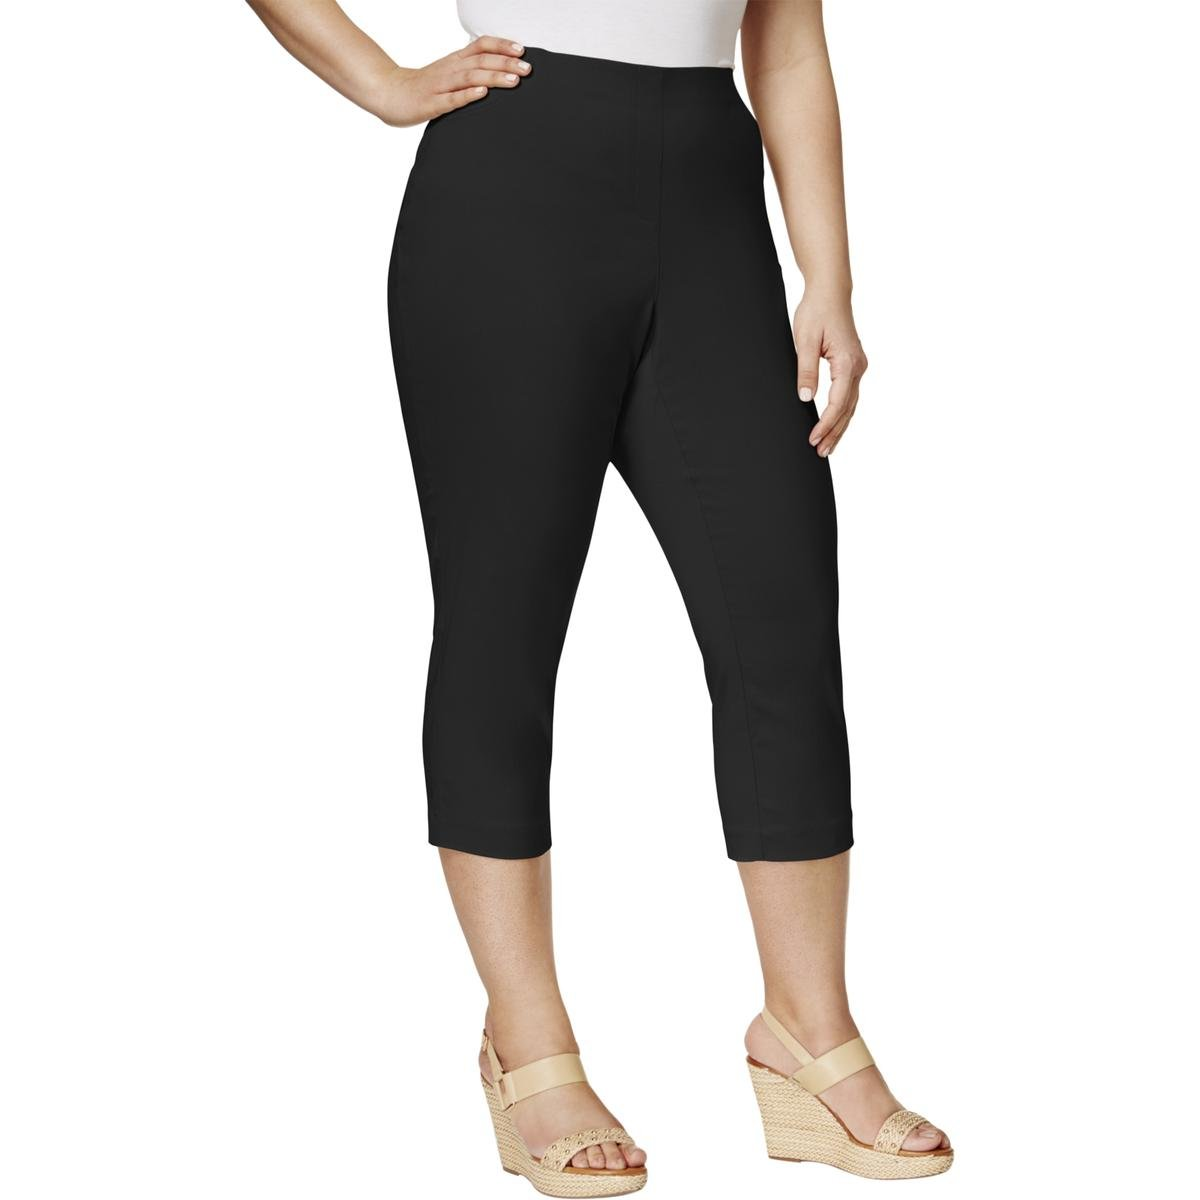 Style & Co.. Womens Plus Comfort Waist Pull On Capri Pants Black 24W by Style & Co.